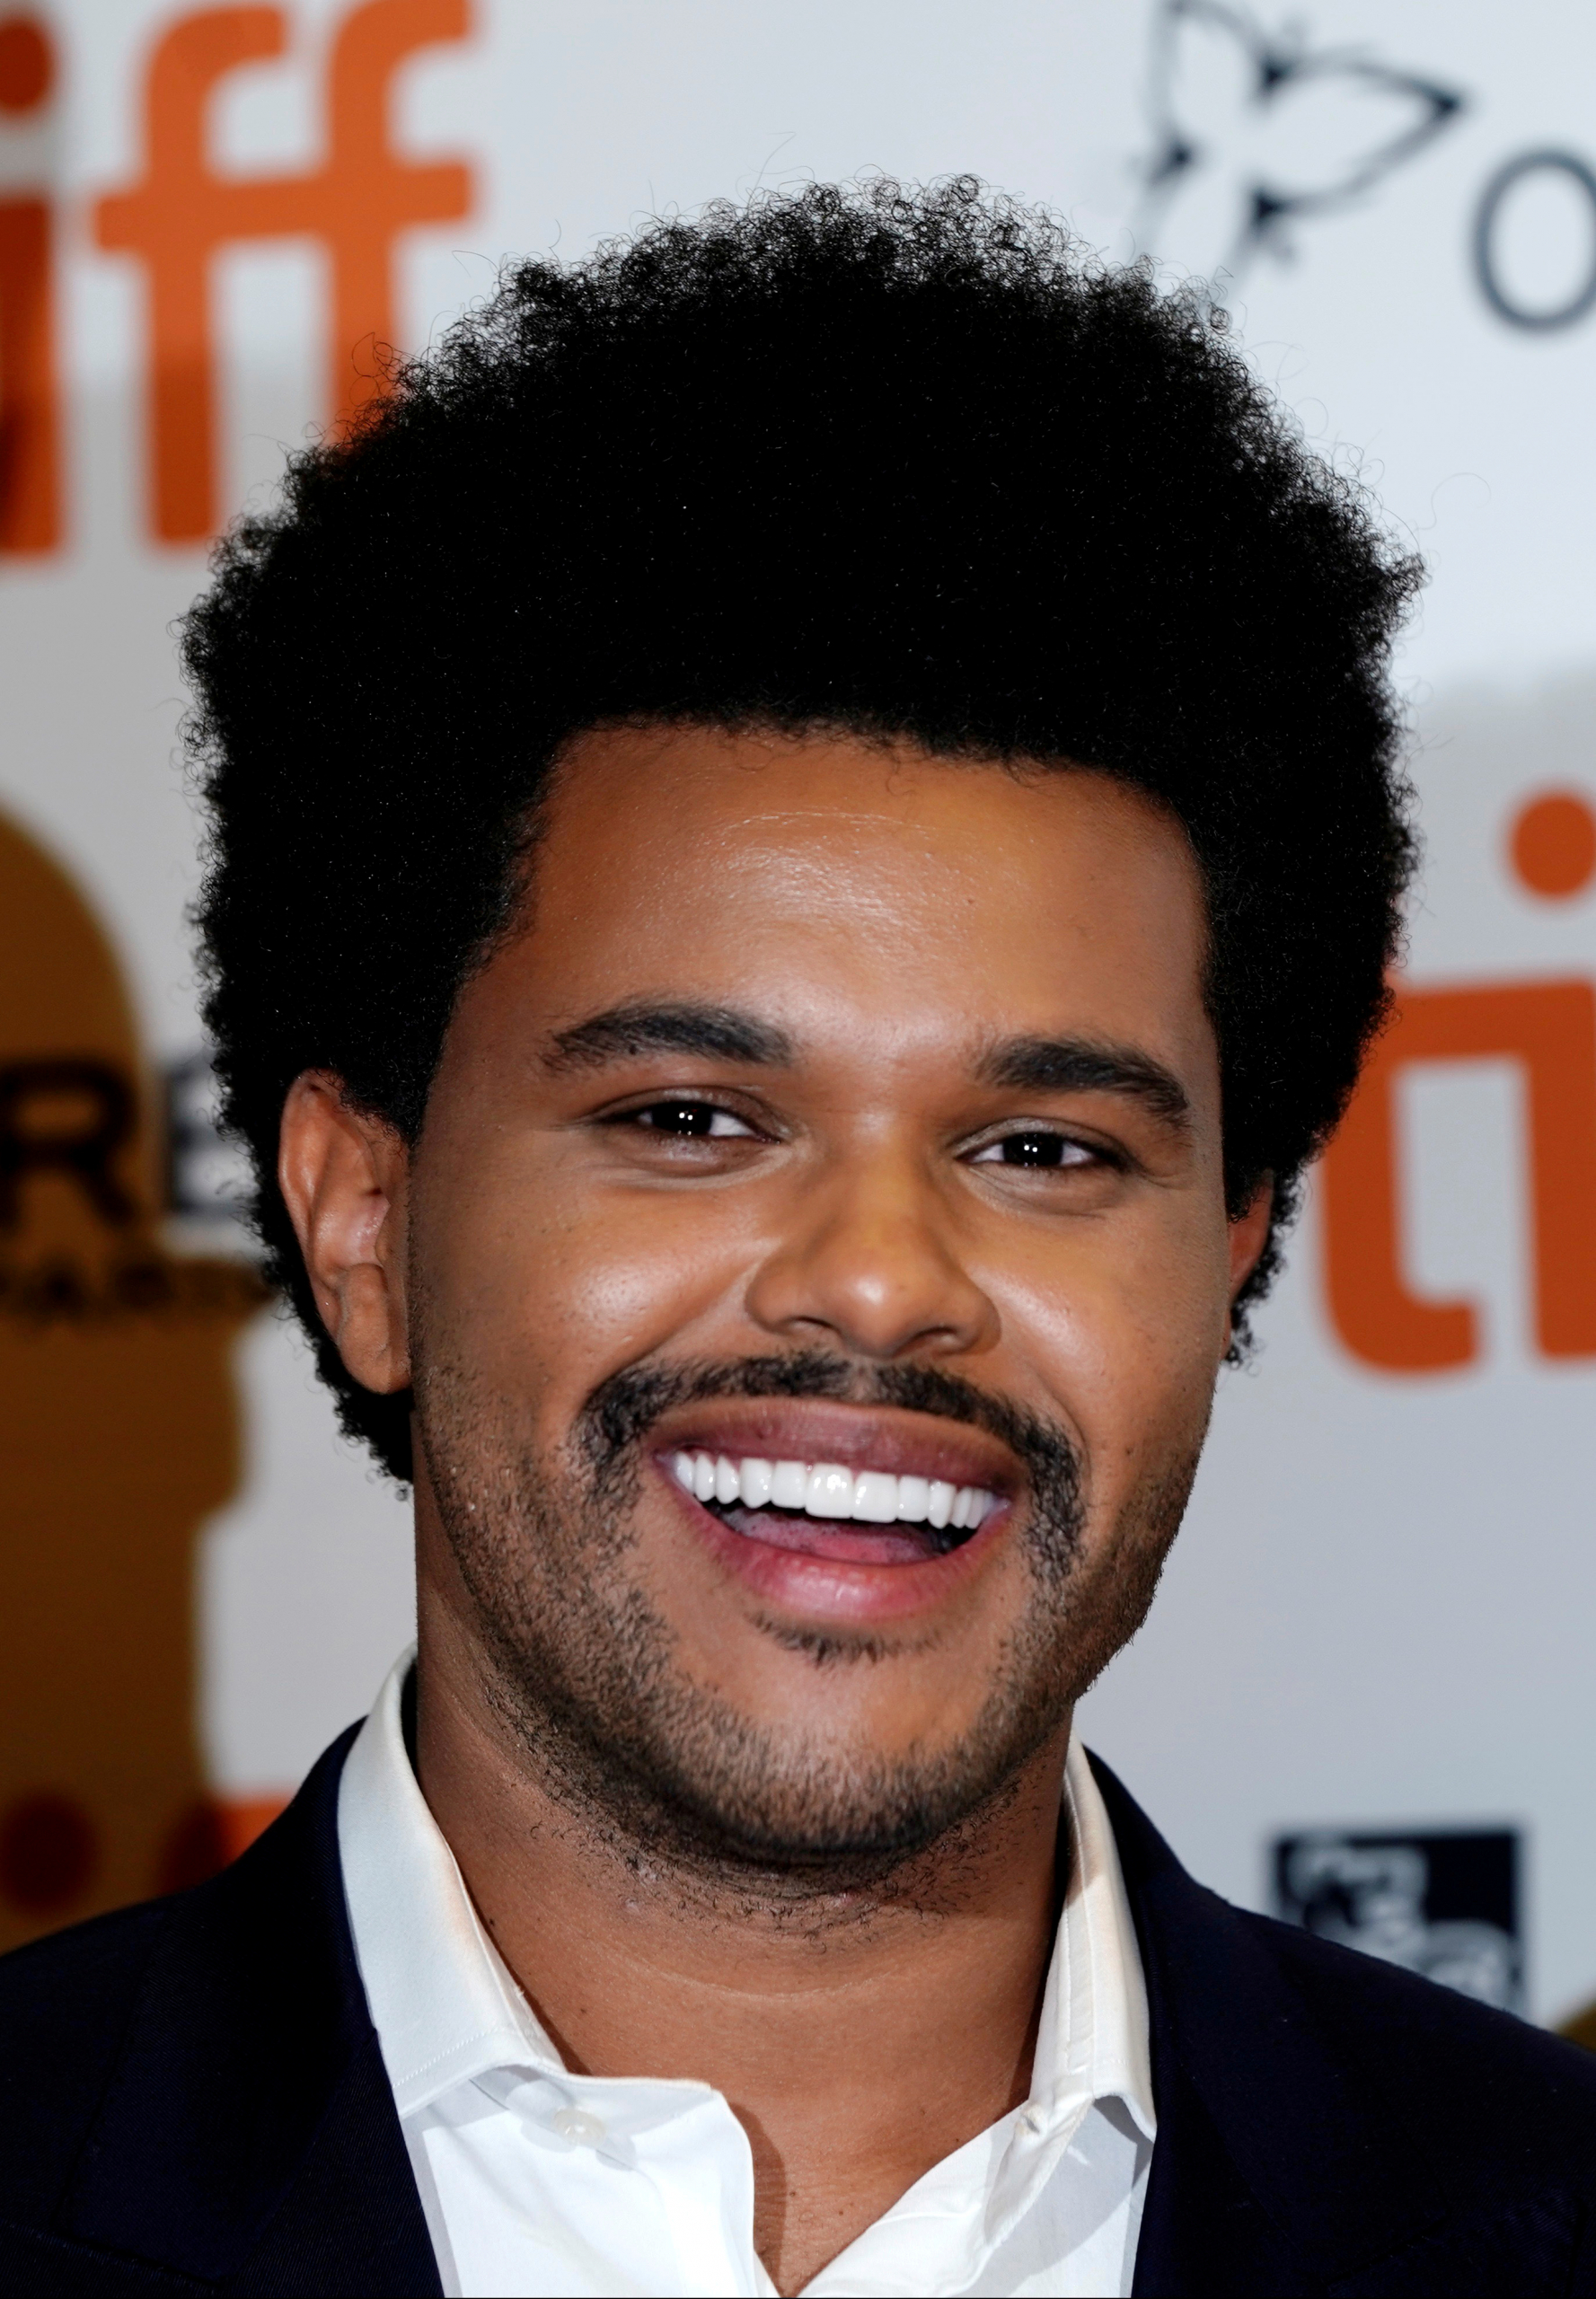 Shooting Stars Countdown Friday August 27: Can The Weeknd Keep His Number 1 Dominance This Week?